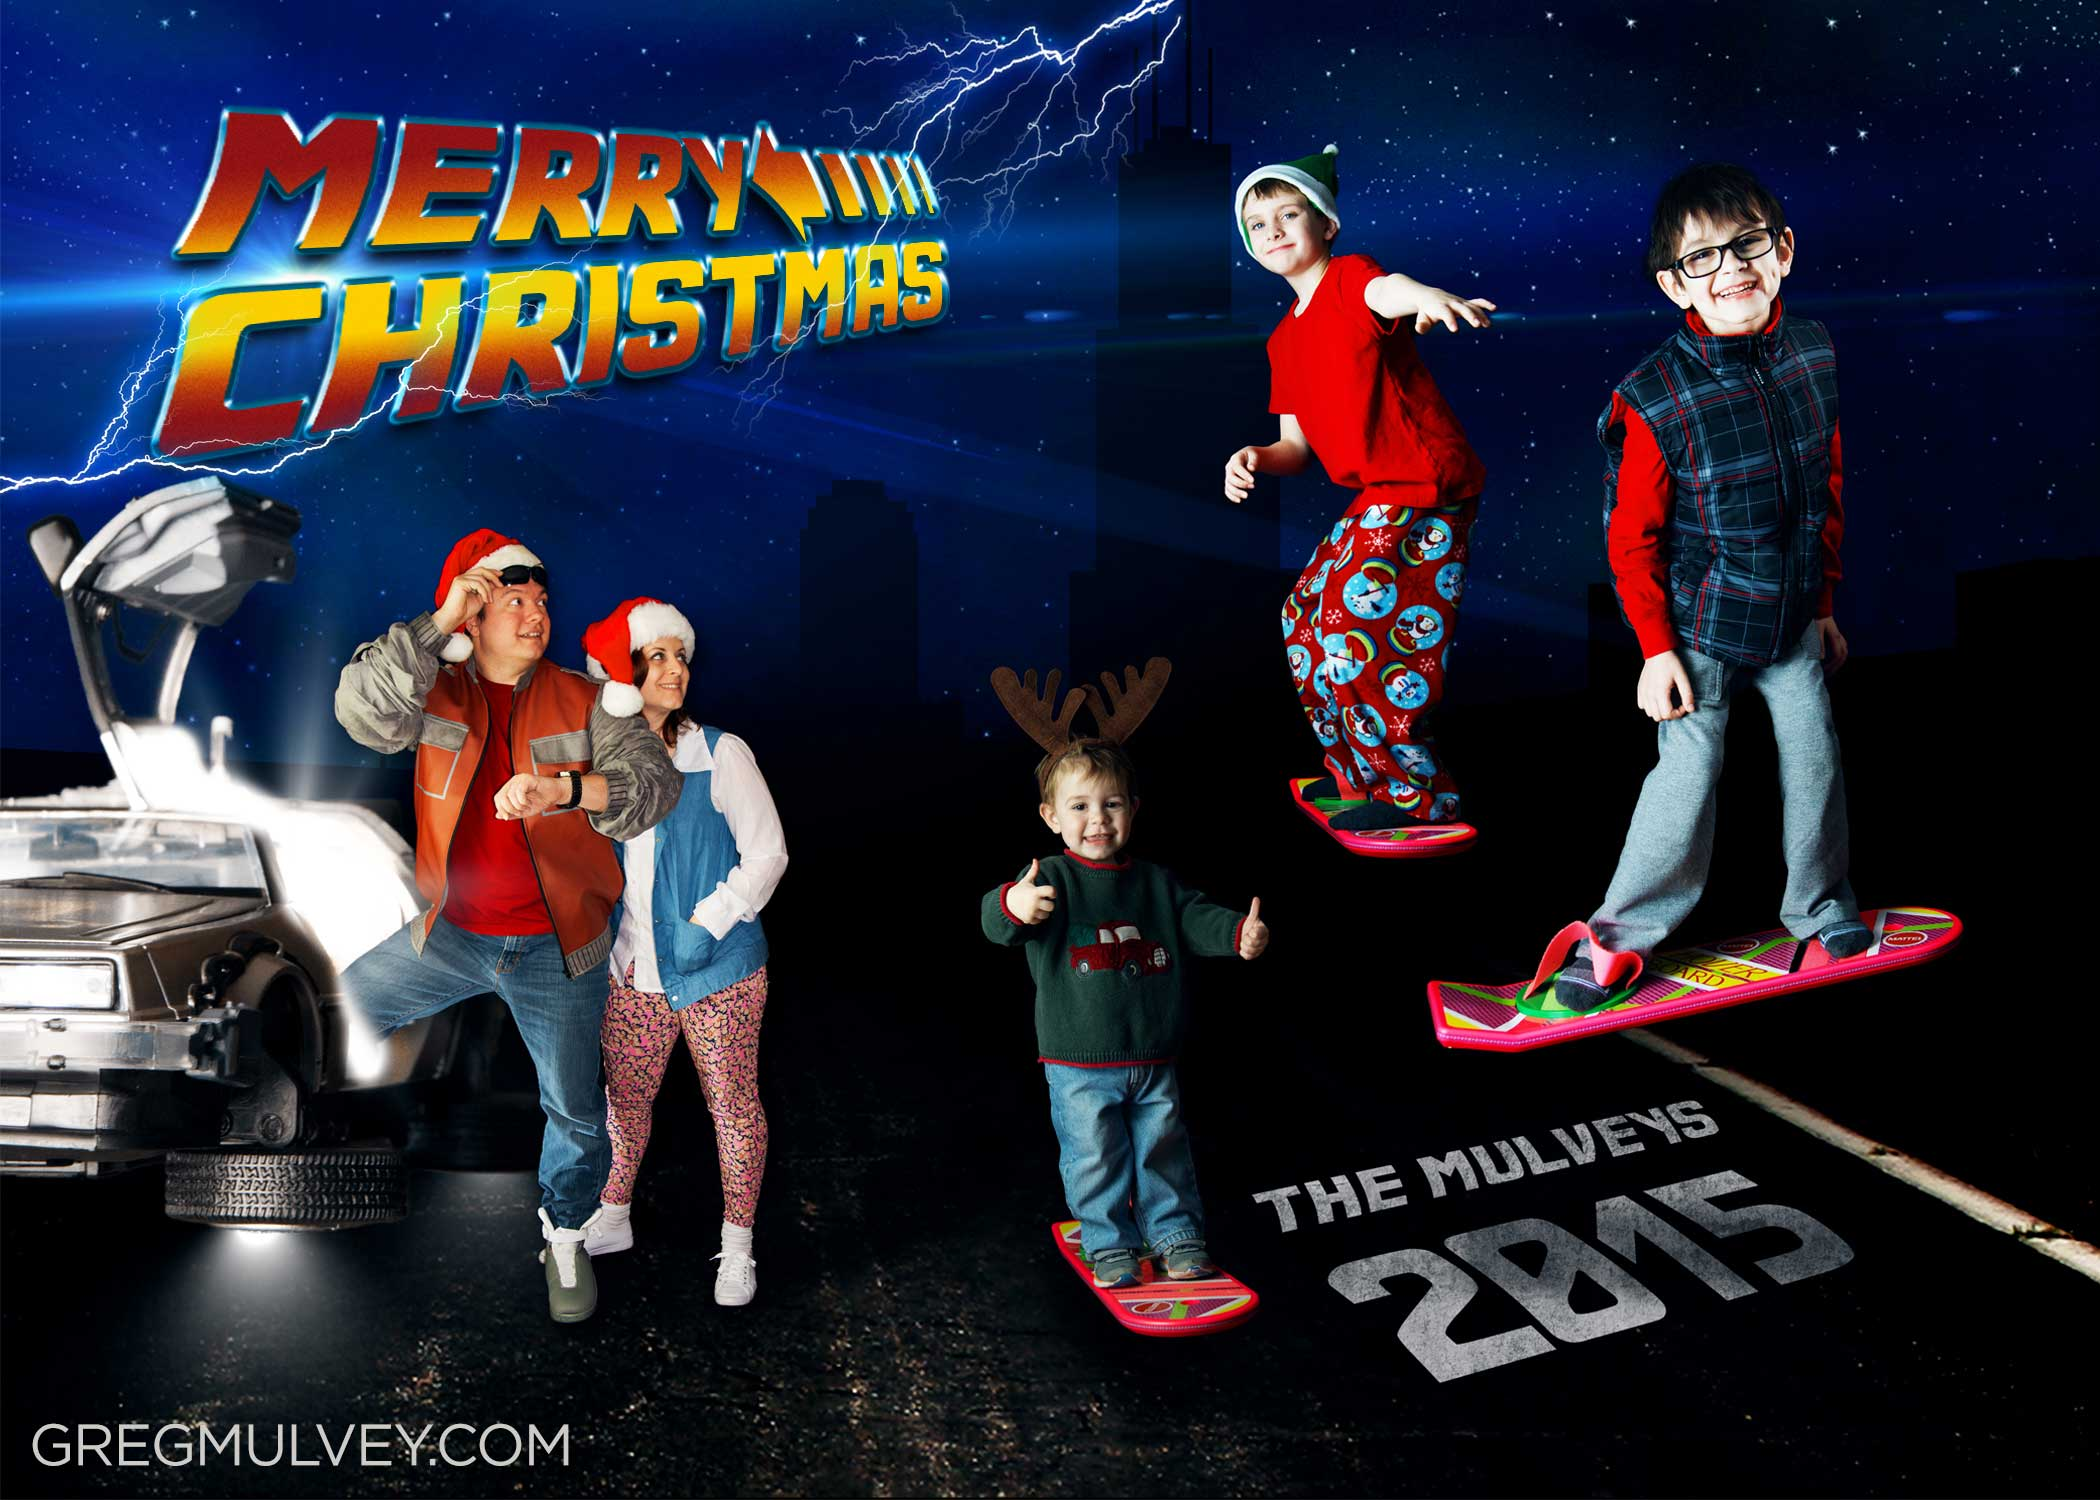 Funny Christmas Cards Back To The Future Augmented Reality